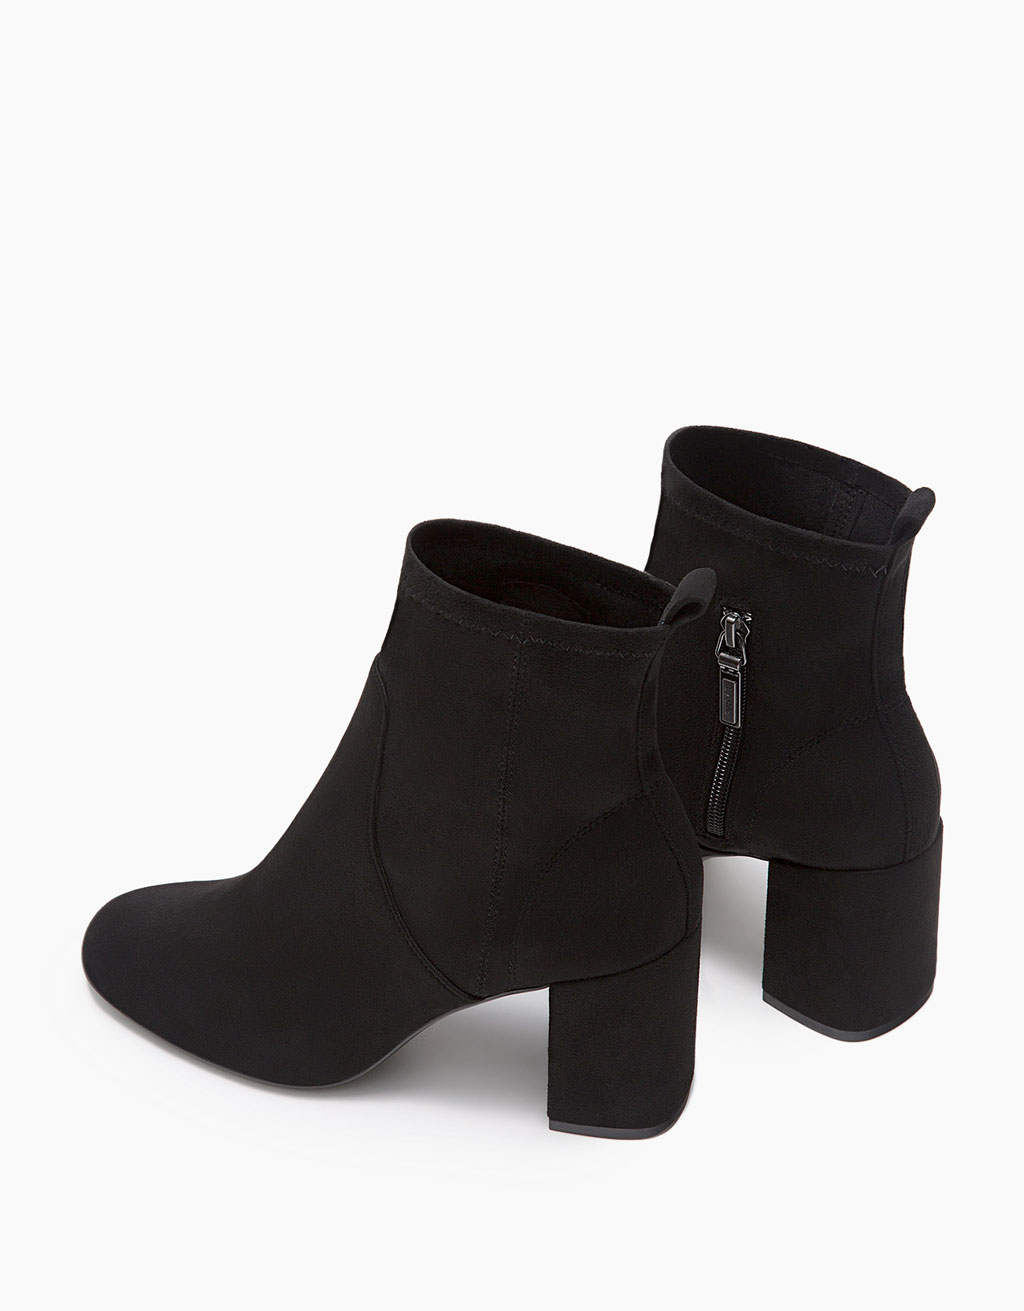 Mid-heel ankle boots with fitted leg